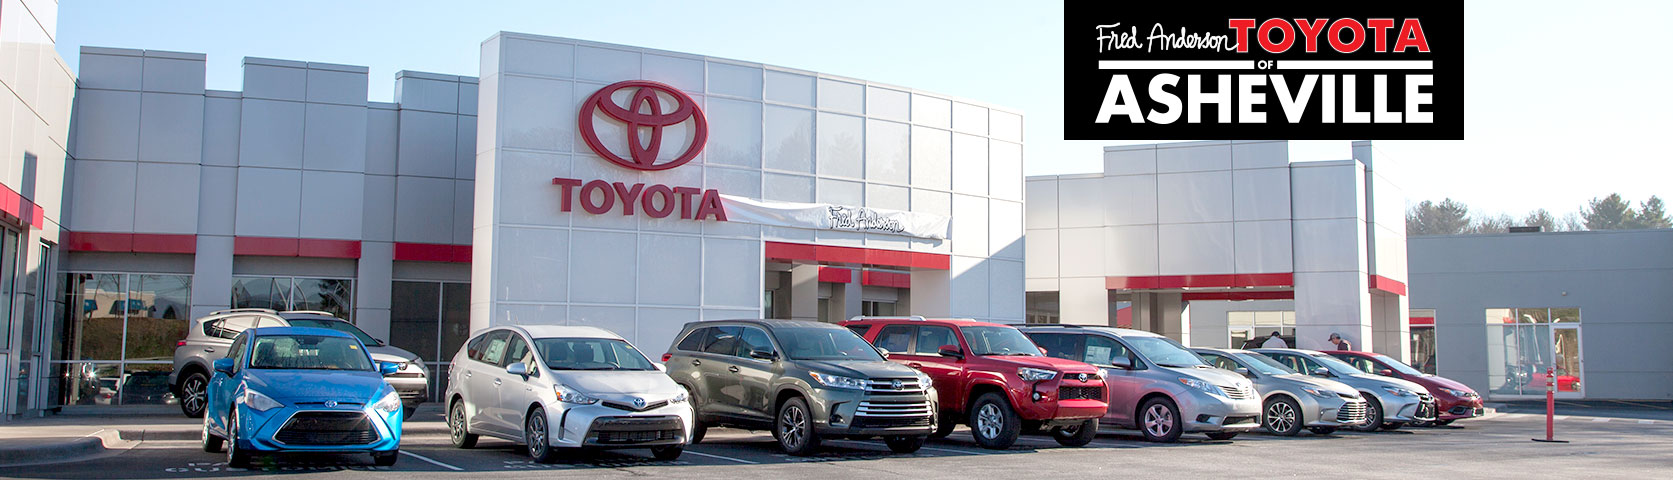 Anderson automotive group new kia toyota scion nissan dealership in raleigh nc 27617